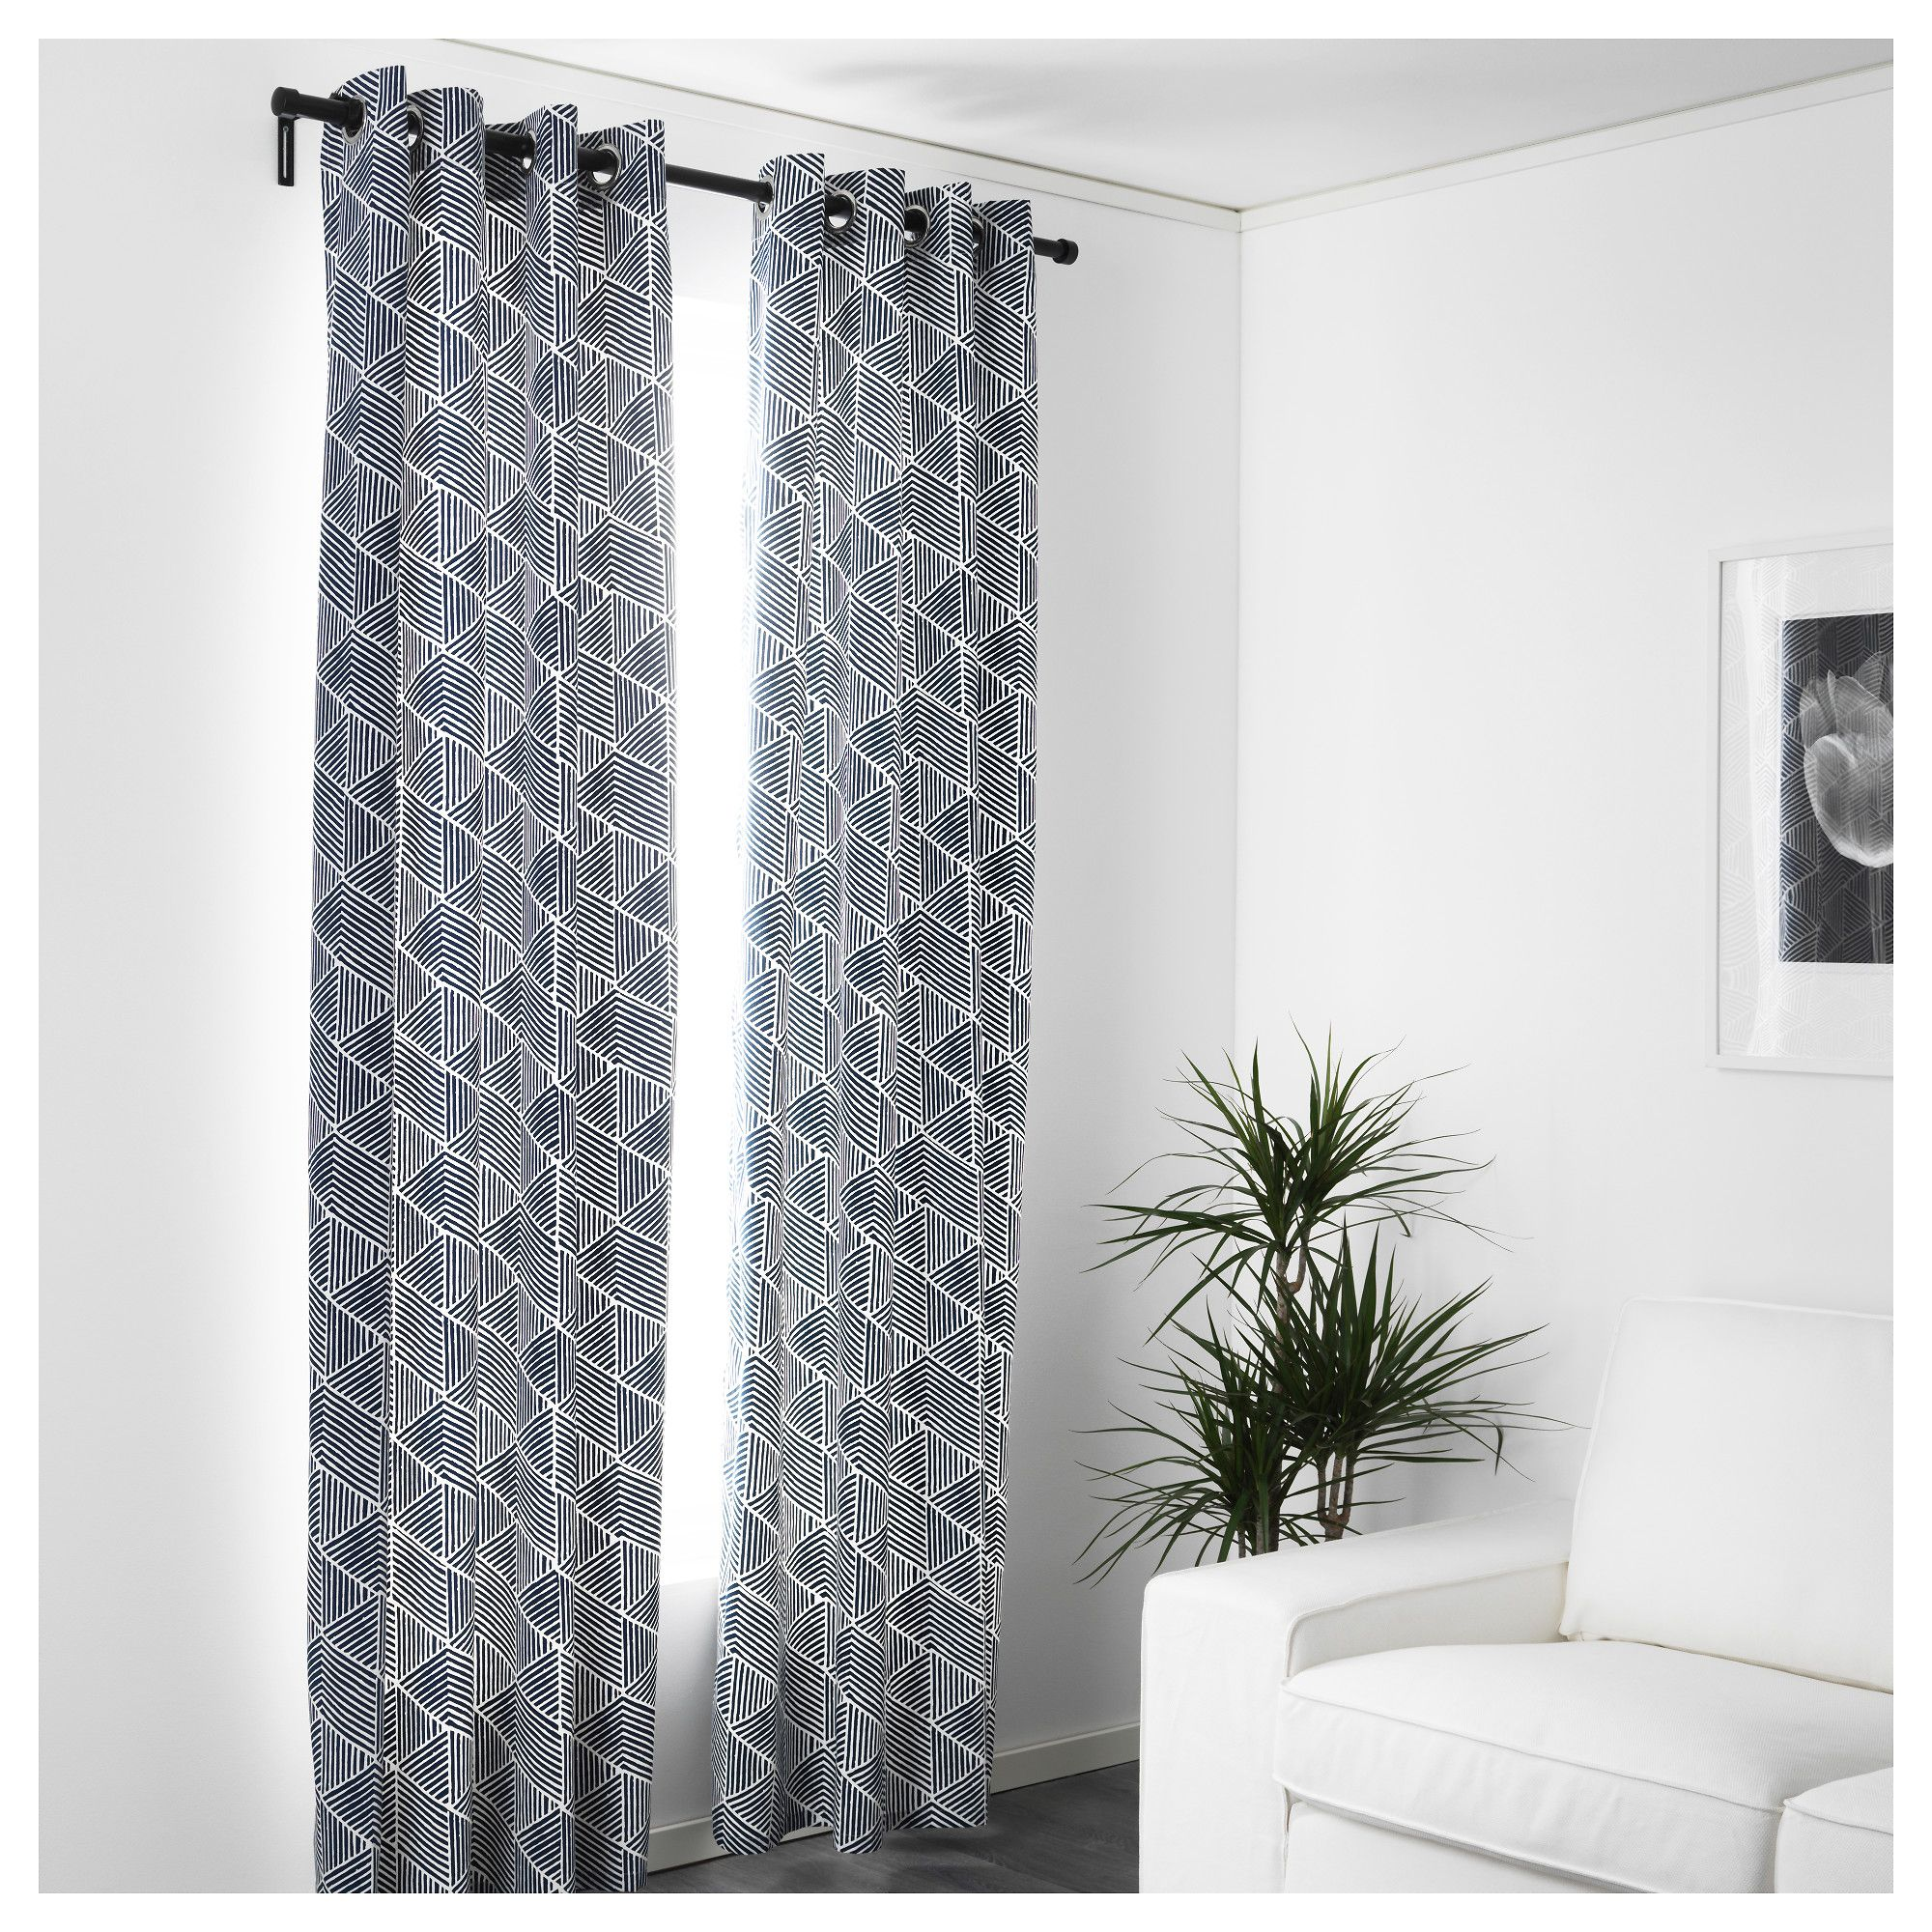 Ikea NunnerÖrt Curtains 1 Pair Blue White 145x250 Cm The Thick Darken Room And Provide Privacy By Preventing People Outside From Seeing